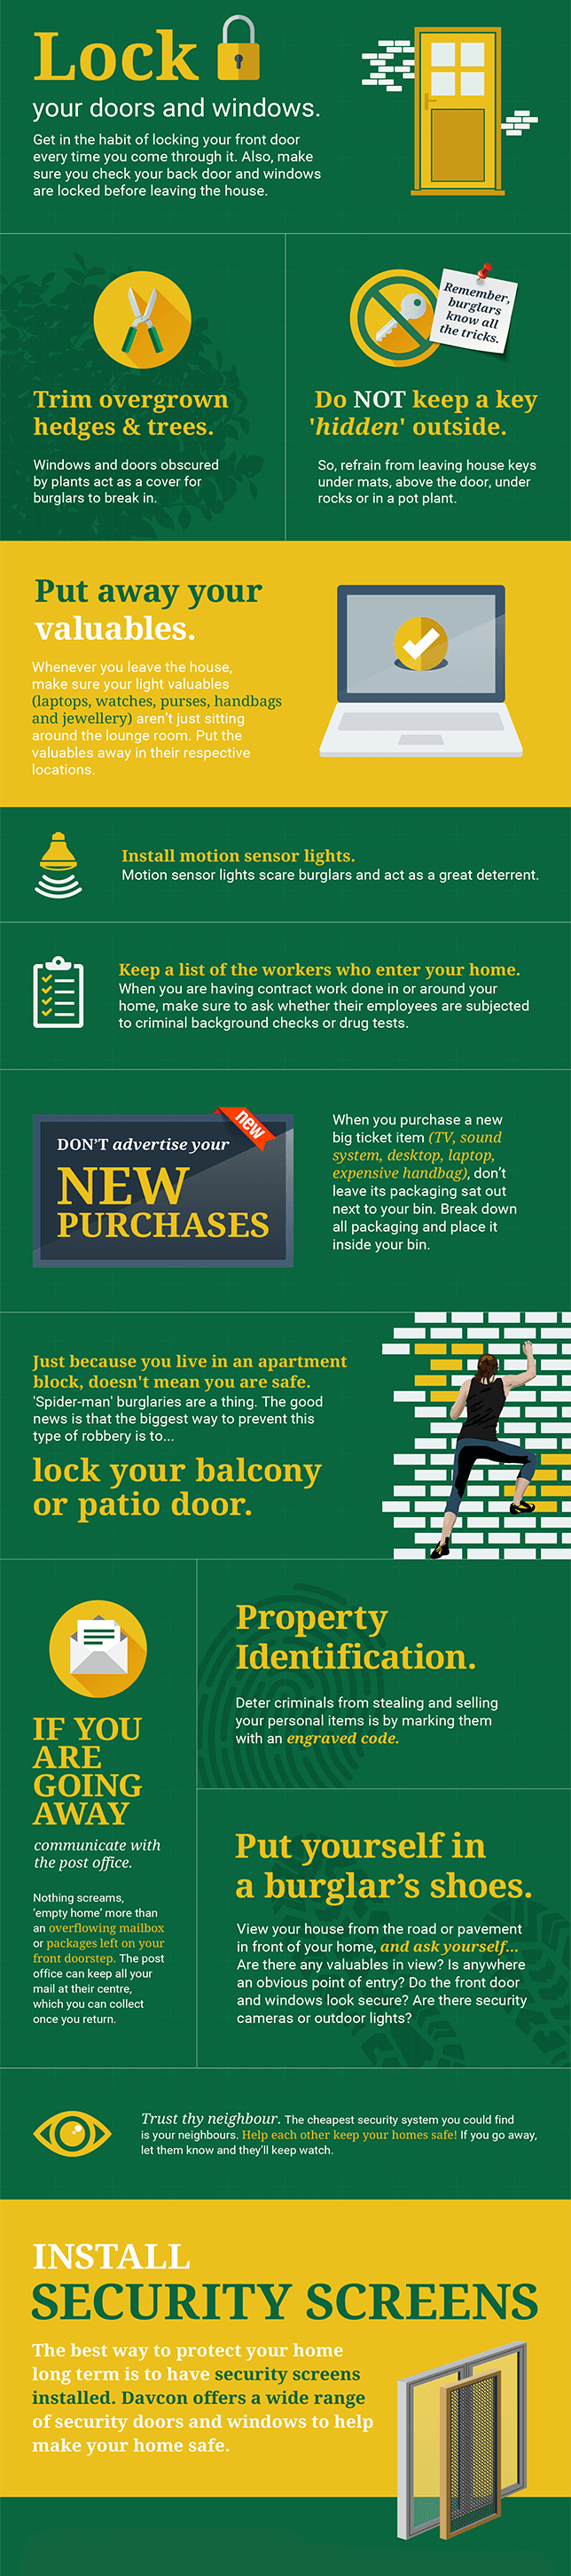 Davcon home security tips infographic